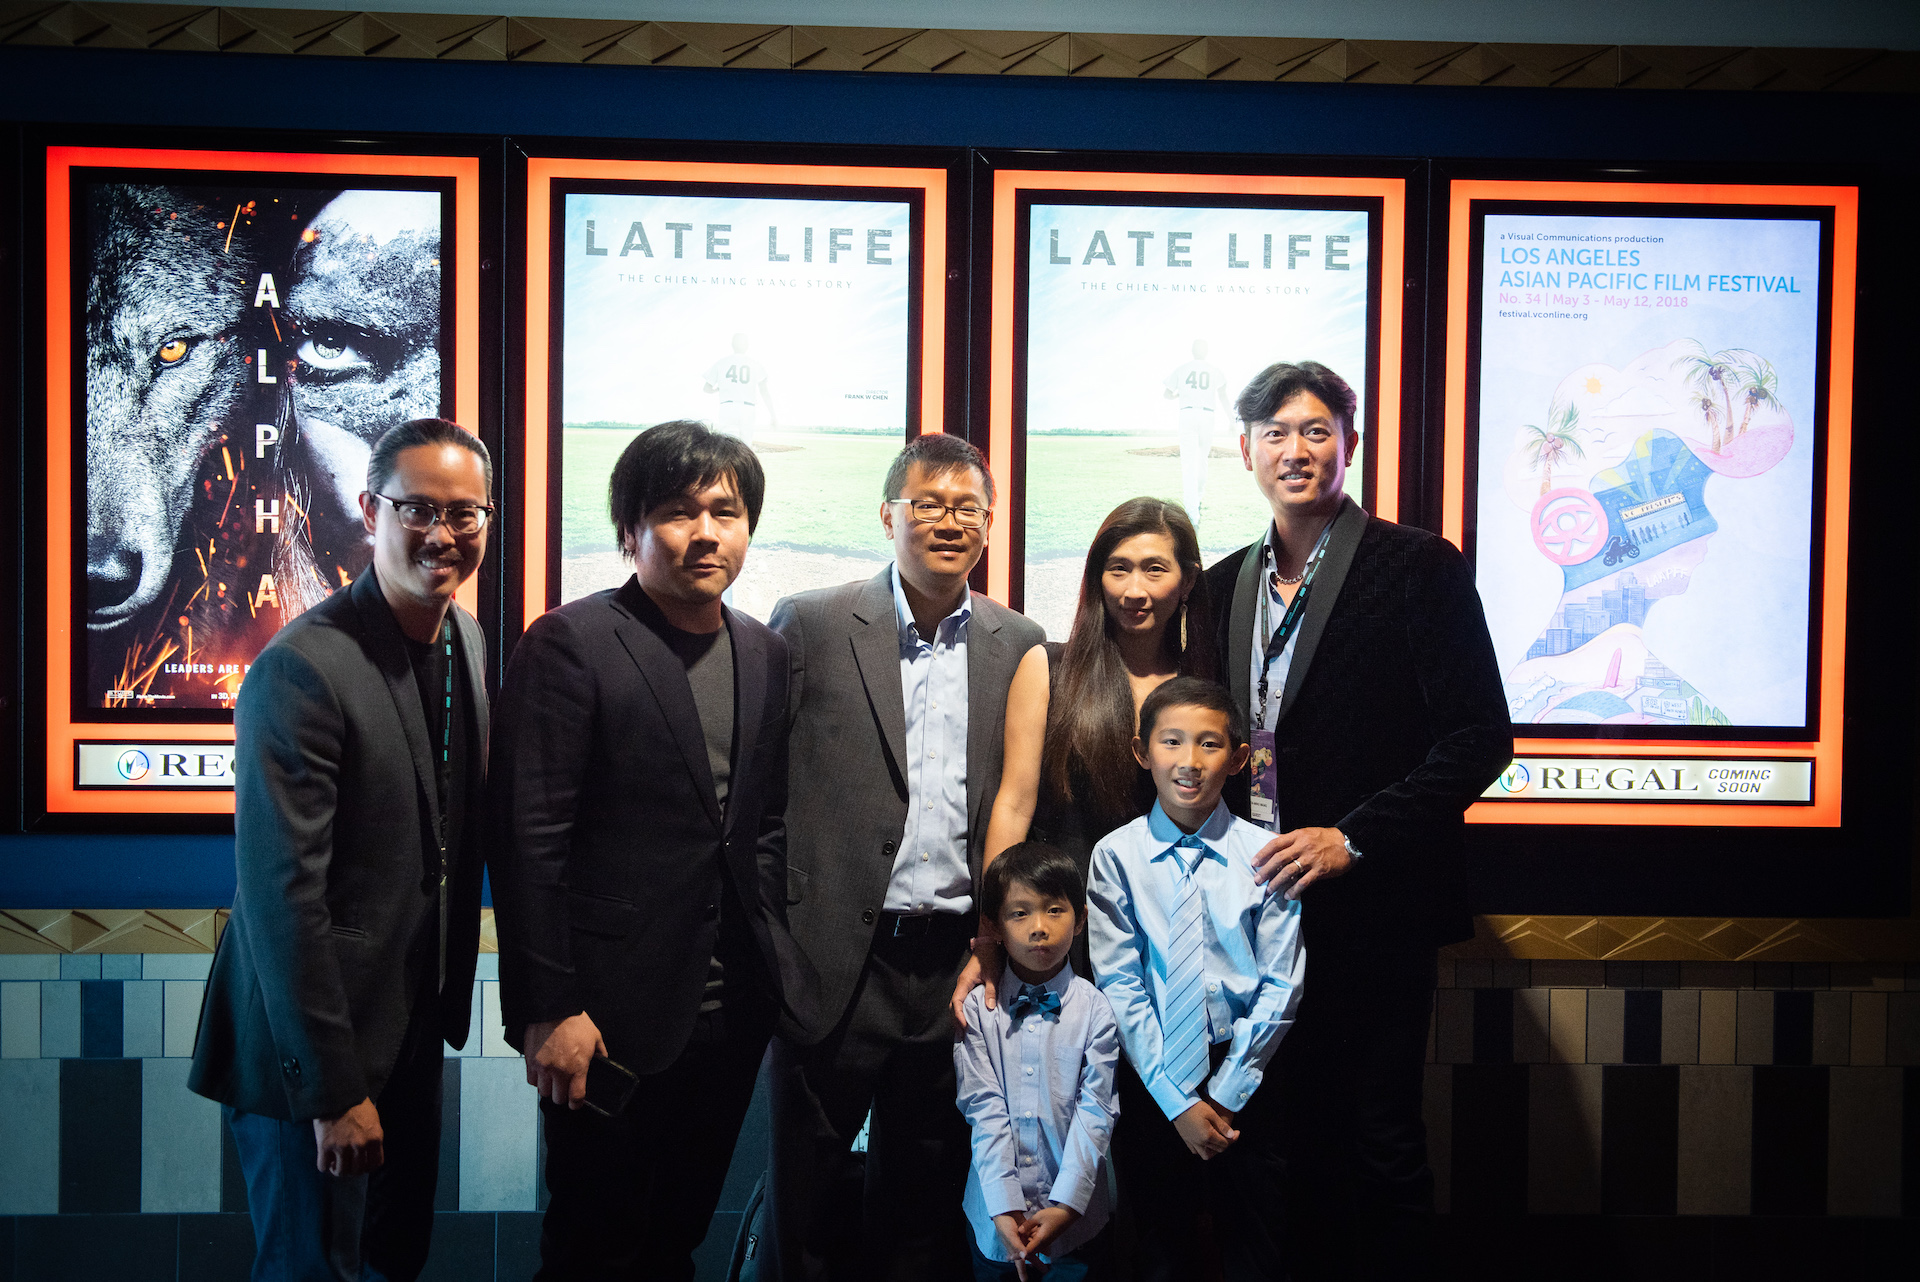 Cinematographer Hai-Tao Wu (left) with Frank W. Chen, and Alan Chang, and Chien-Ming and his family.